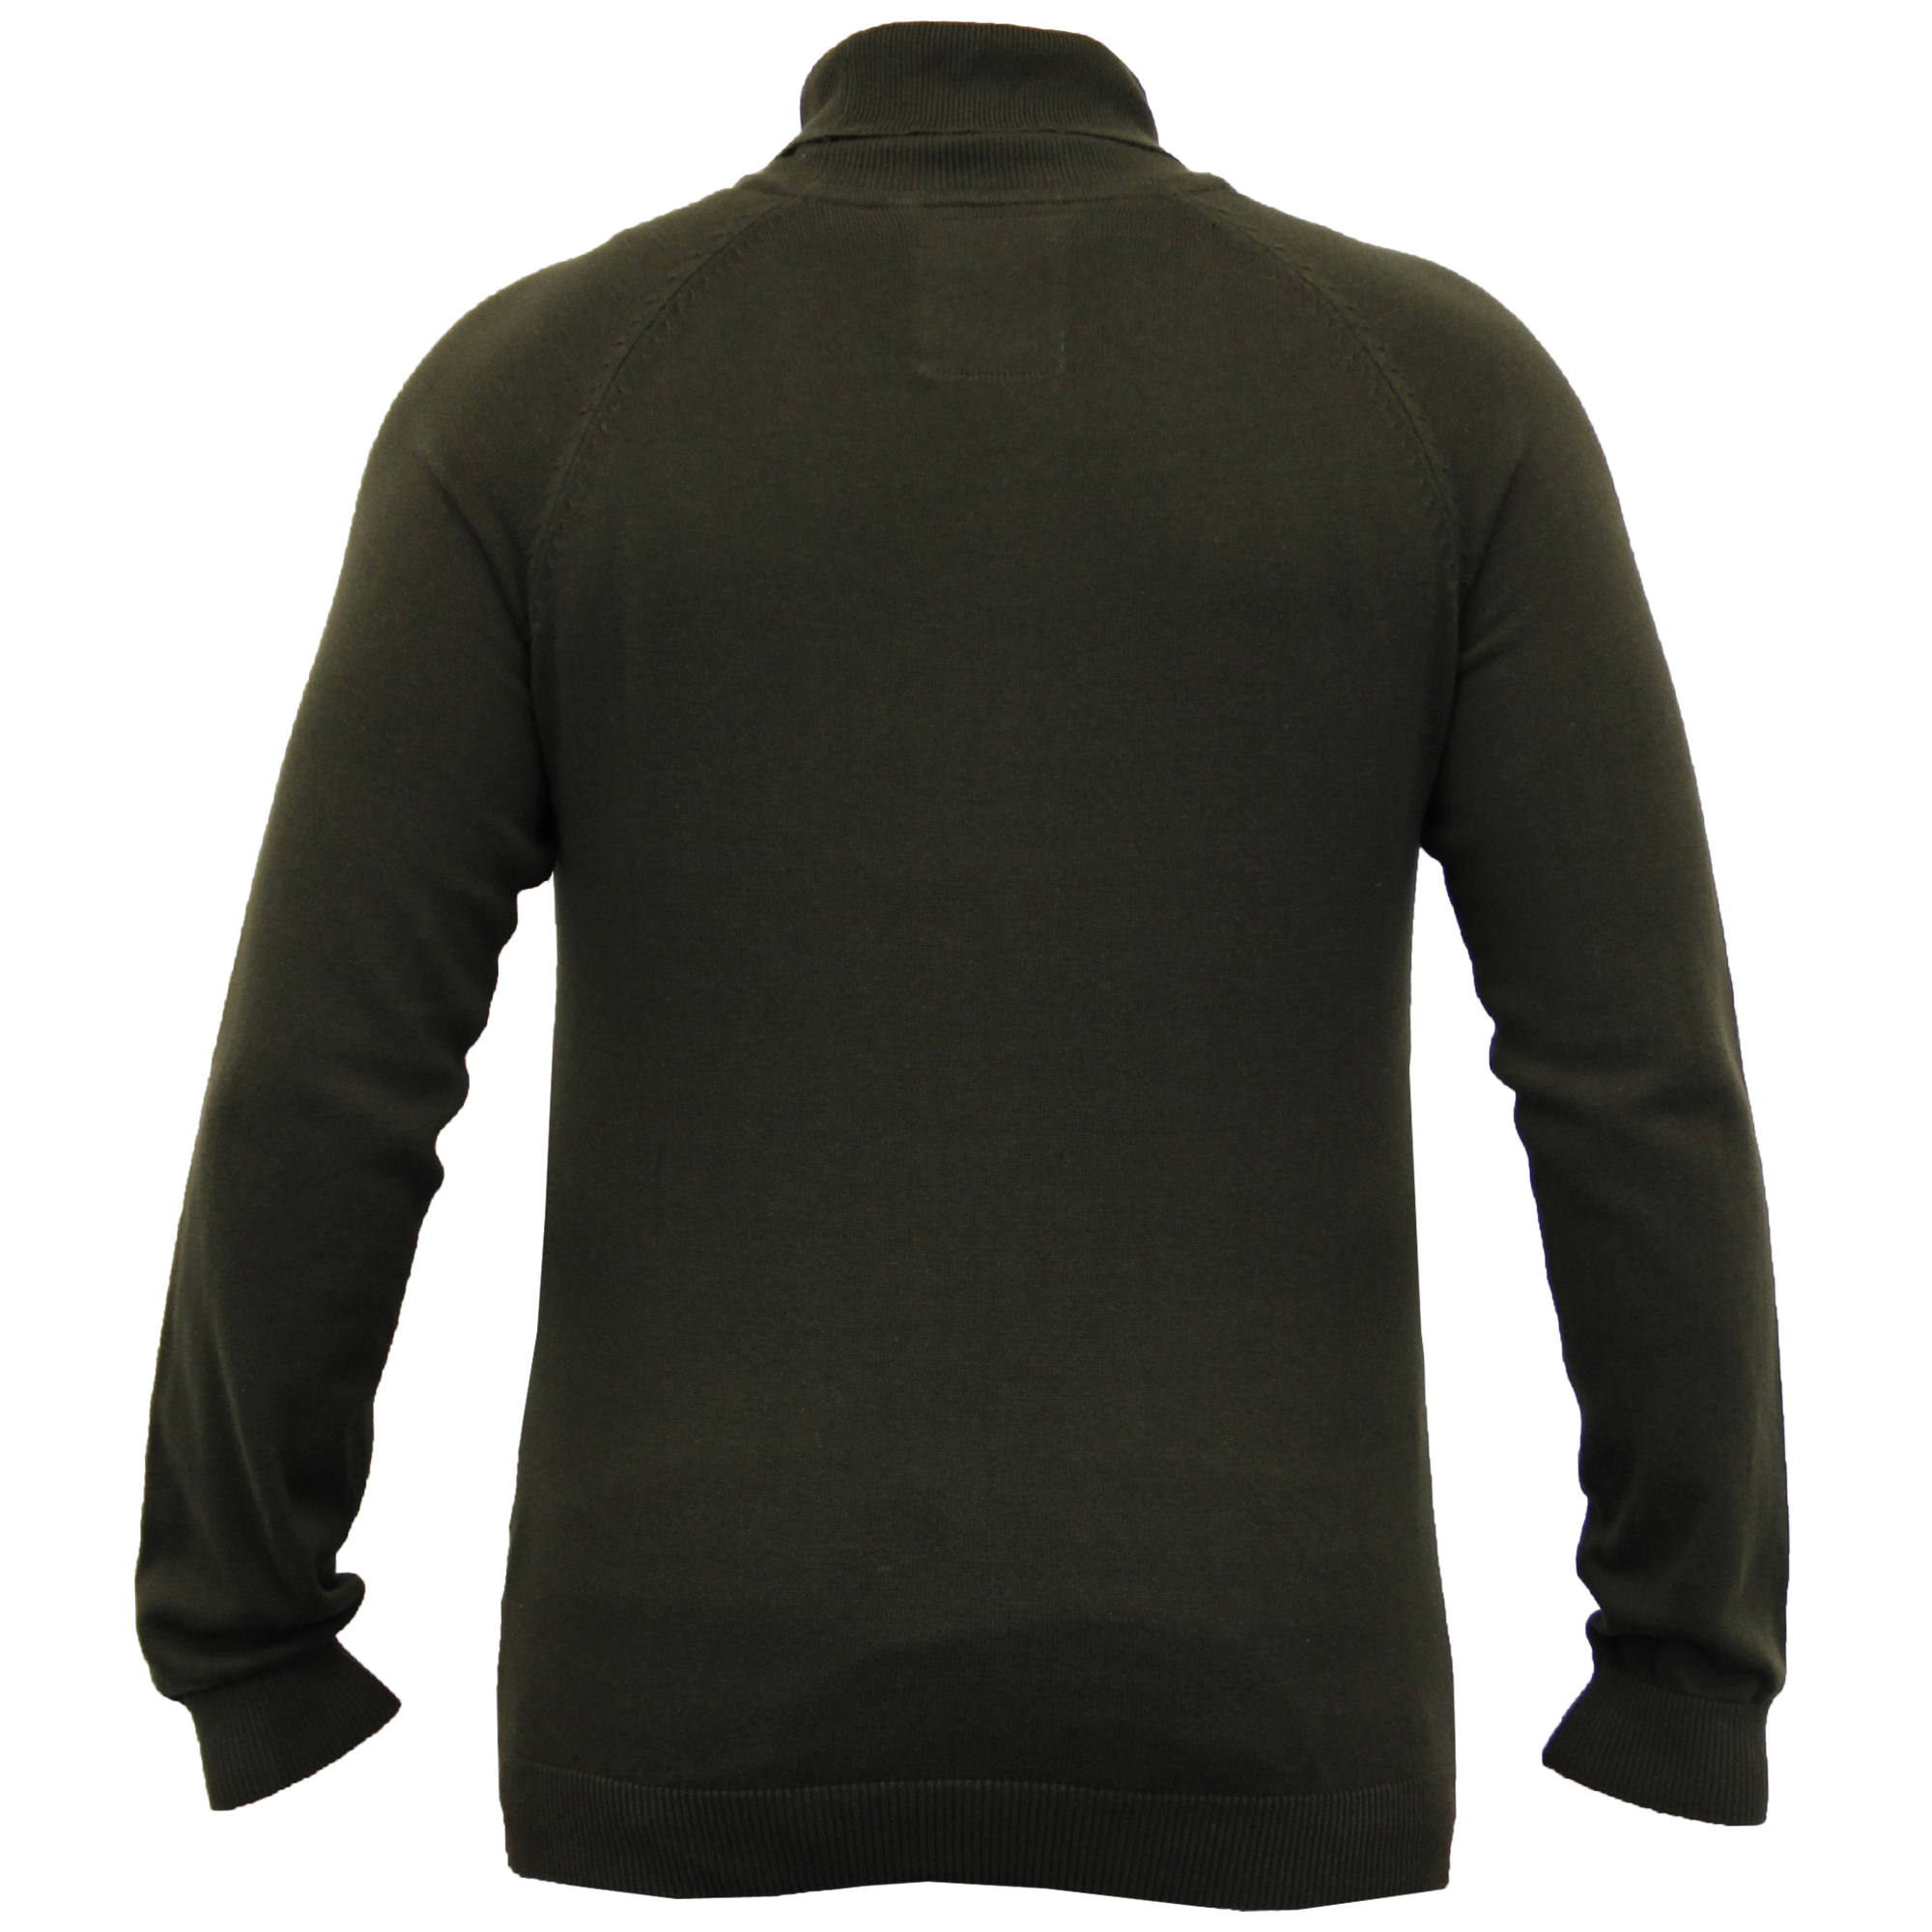 Mens-Jumper-Threadbare-Knitted-Sweater-Turtle-Polo-Neck-Pullover-Top-Winter-New thumbnail 3